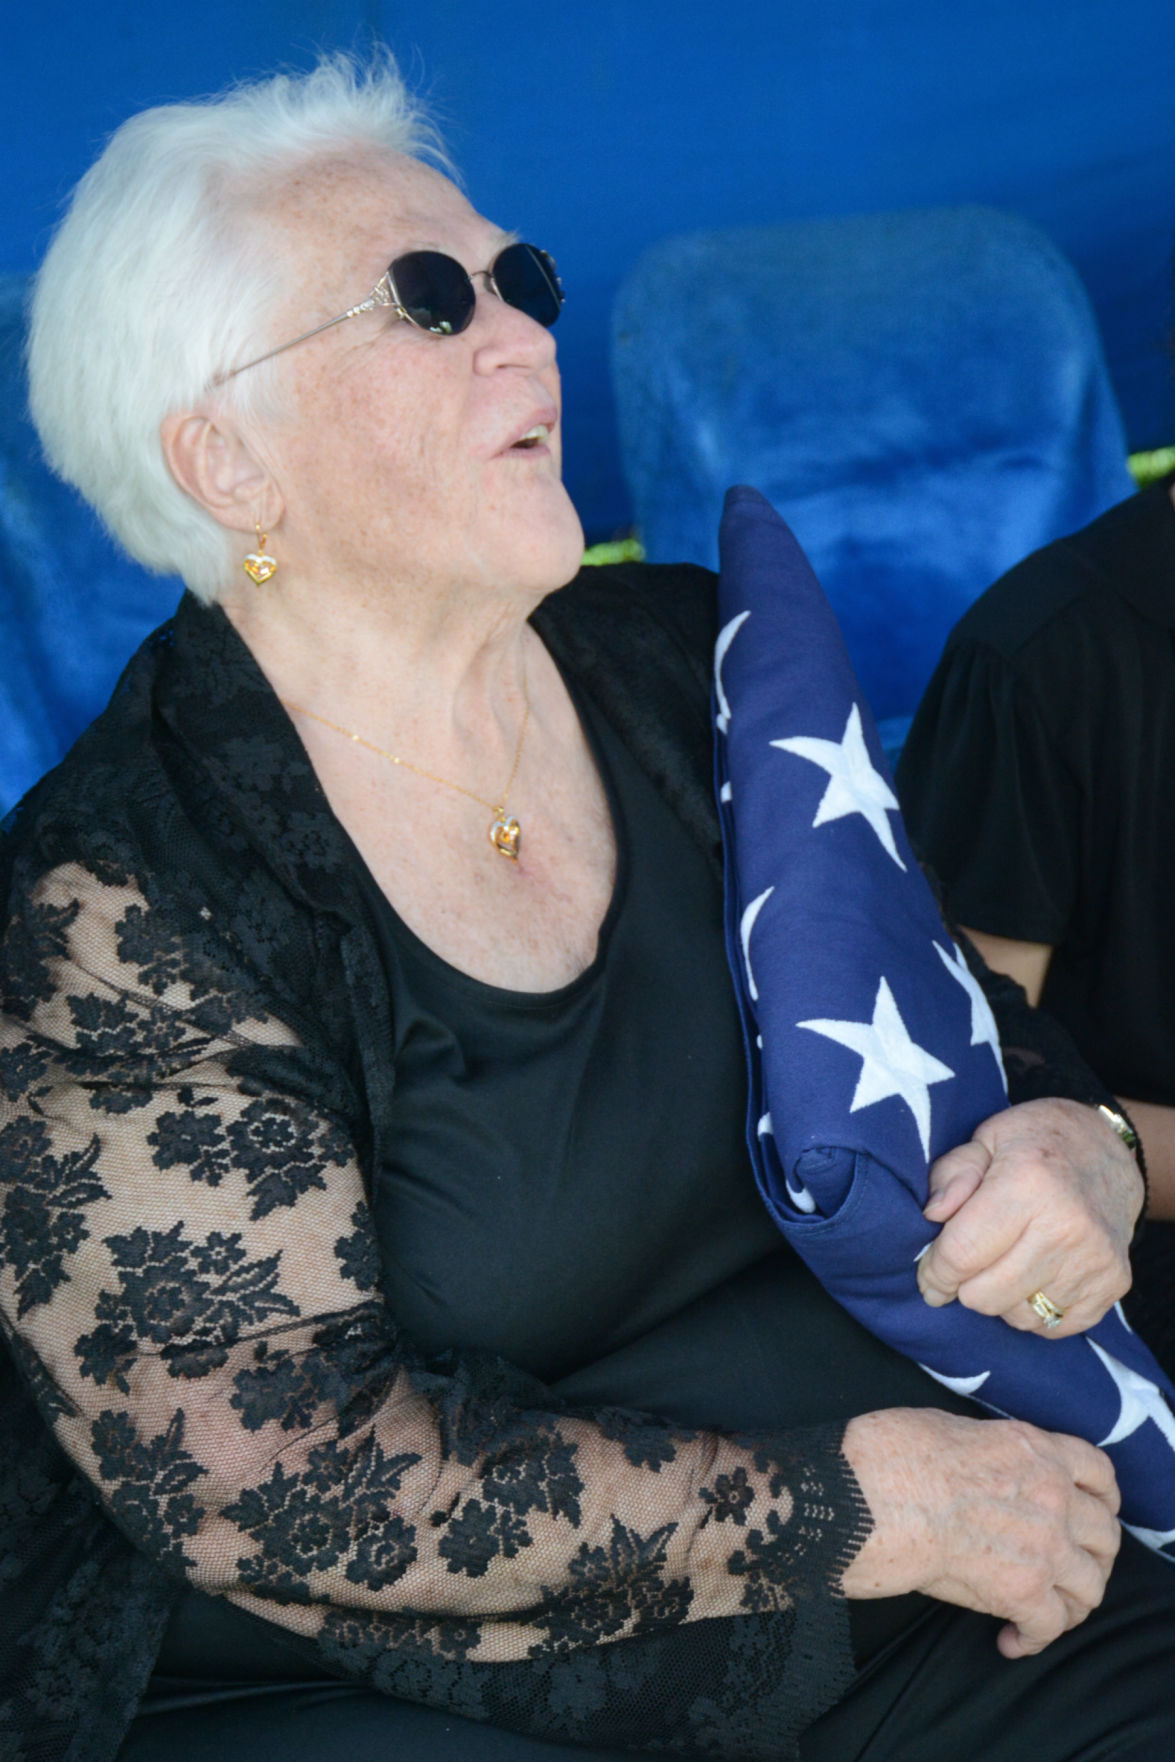 Graveside service held for Clarence Hershberger, who survived sinking of USS Indianapolis during World War II